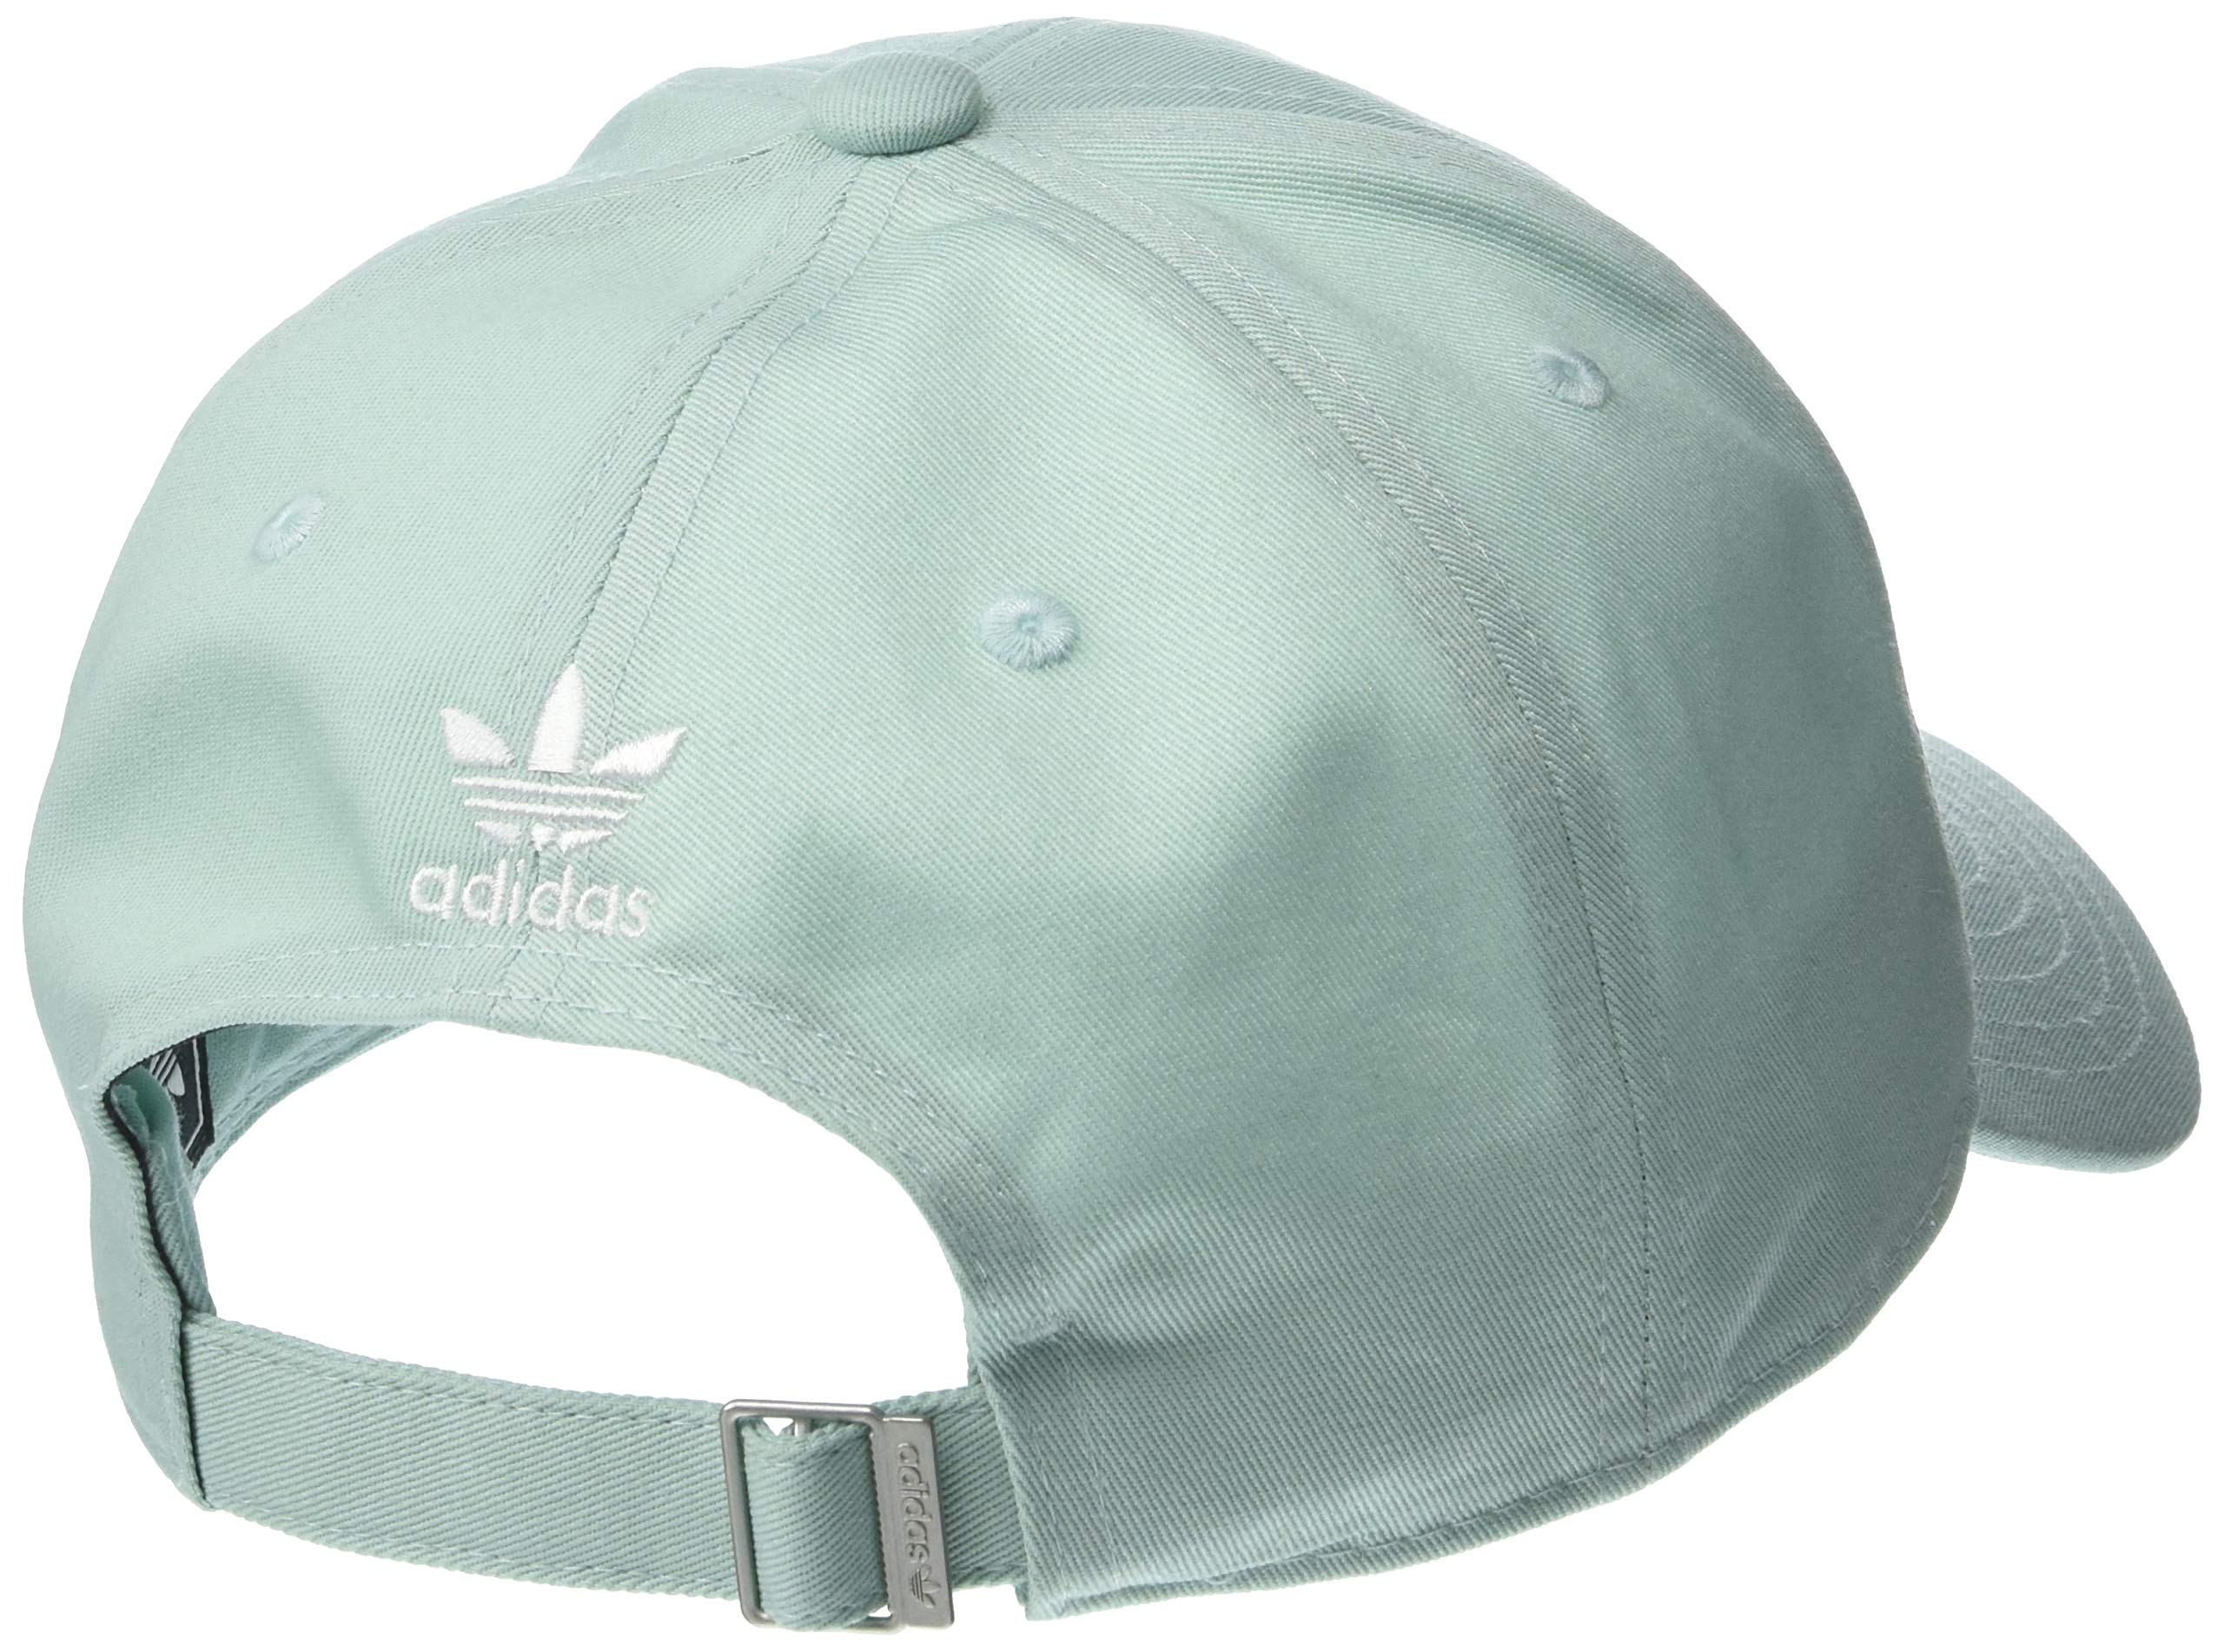 adidas Women's Originals Outline Logo Relaxed Adjustable Cap, Ash Green/White, One Size by adidas (Image #2)